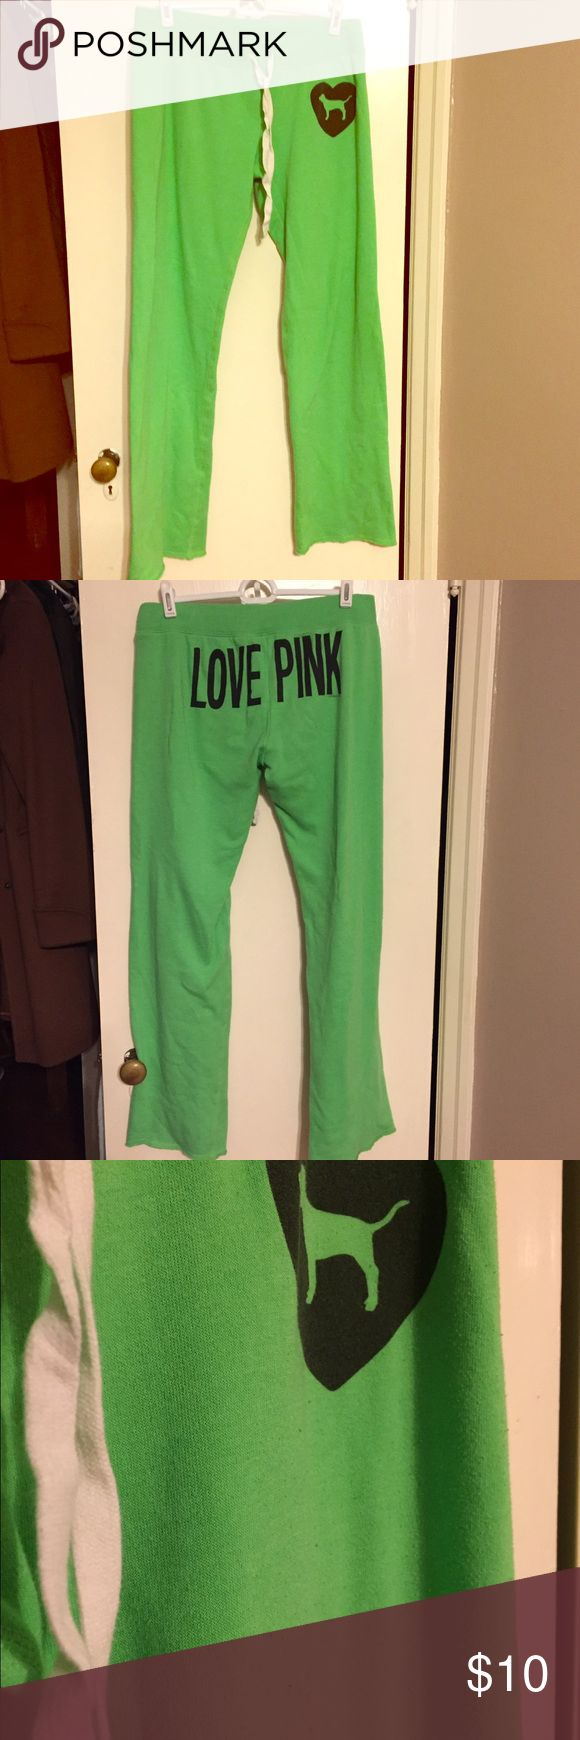 Victoria's Secret Pink Sweat pants Good used condition. Lime green sweat pants. Some pilling, shown in photos PINK Victoria's Secret Pants